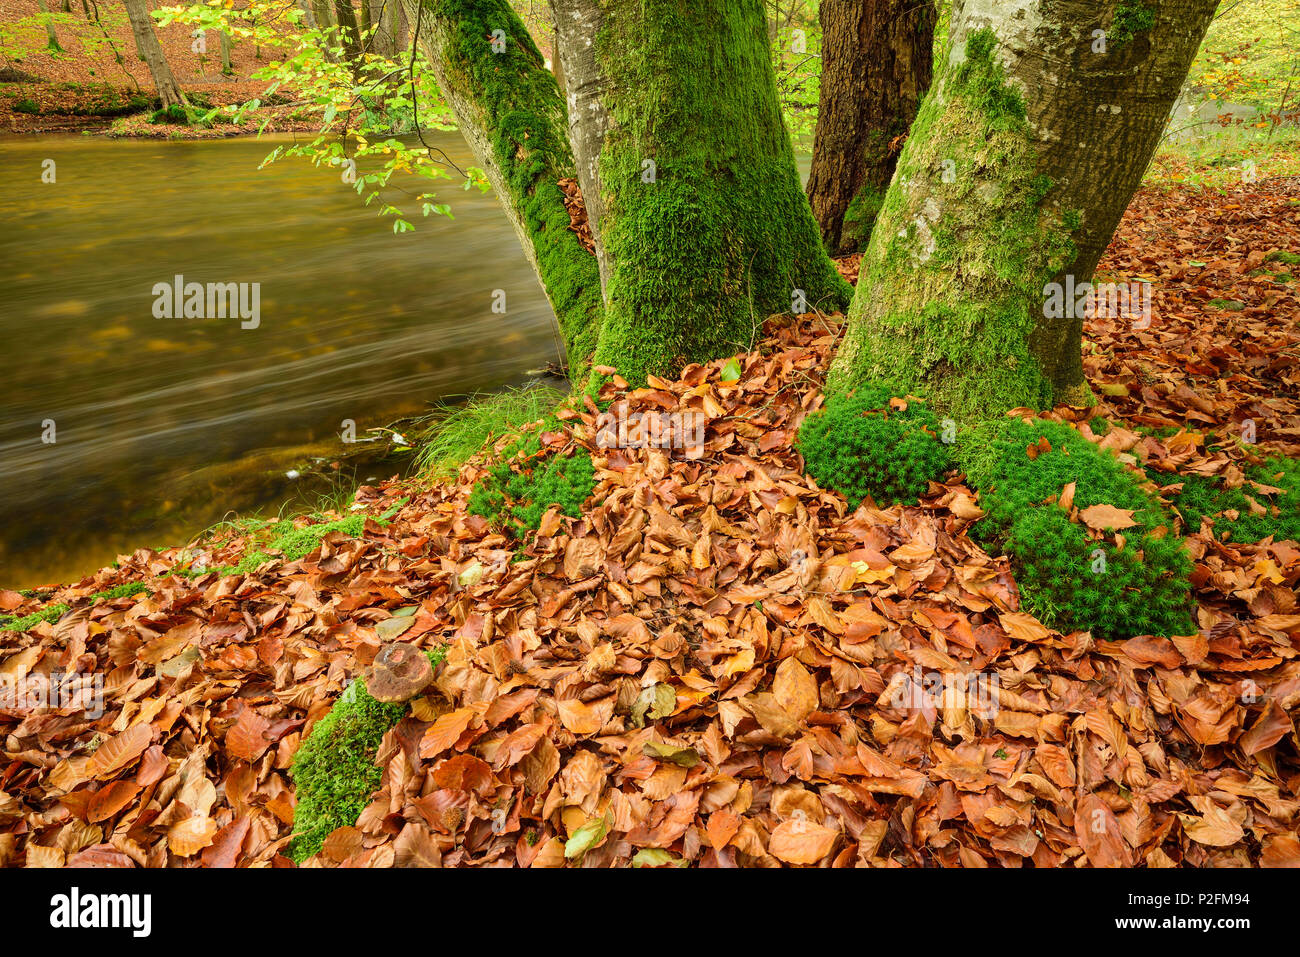 Stream flowing through beech trees in autumn colours, Wuerm valley, Upper Bavaria, Bavaria, Germany - Stock Image